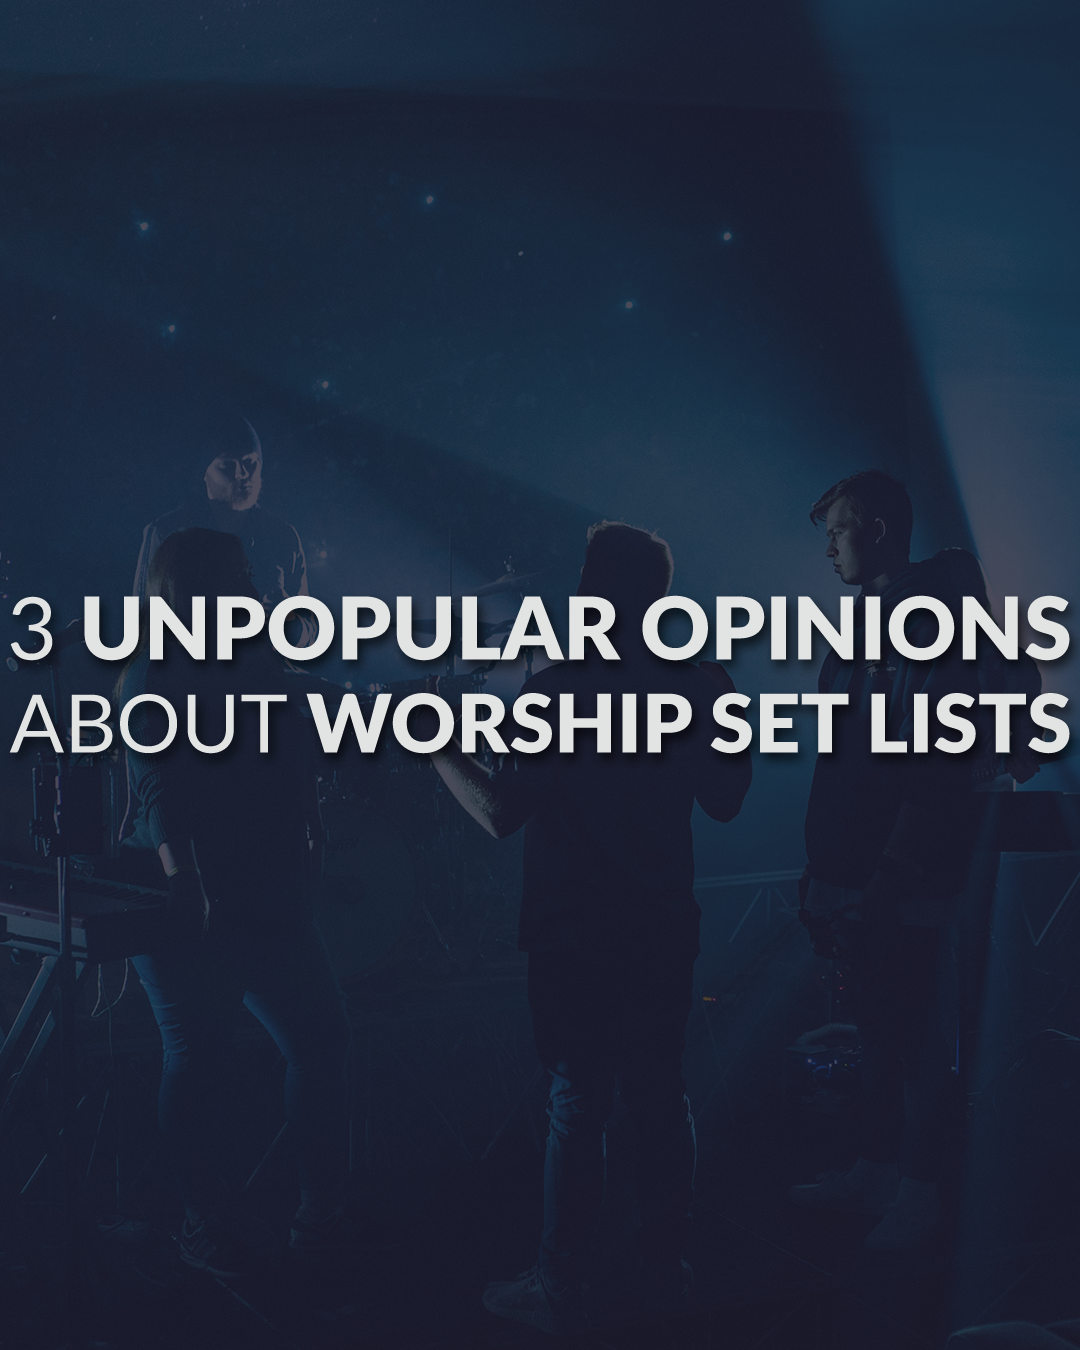 3 Unpopular Opinions About Worship Set Lists